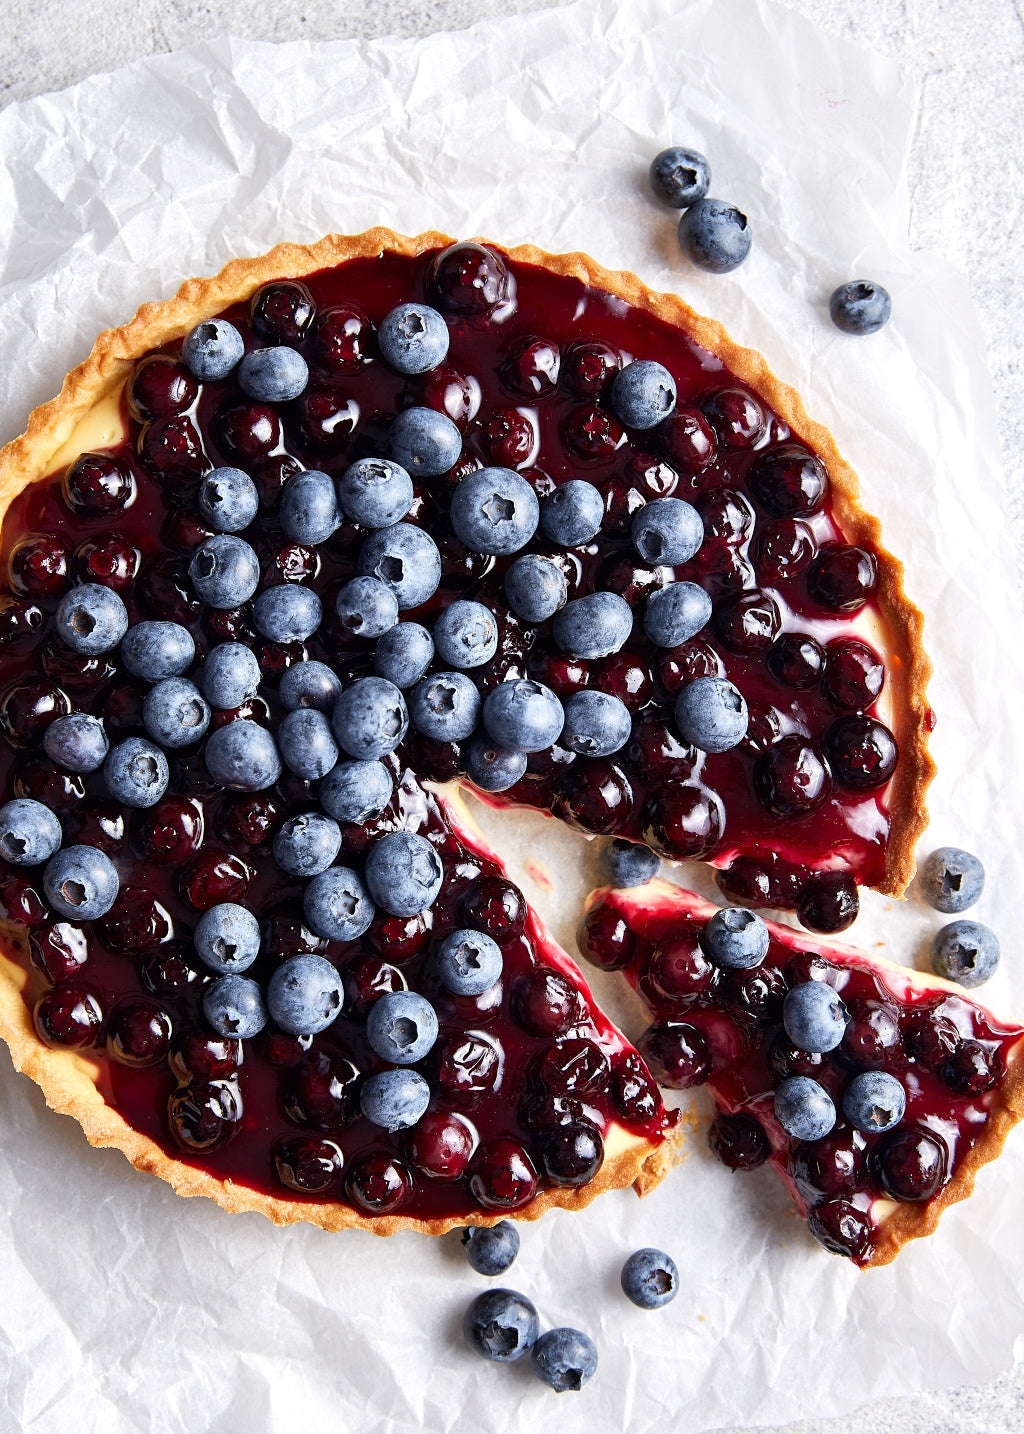 Harris Farm Blueberry Tart